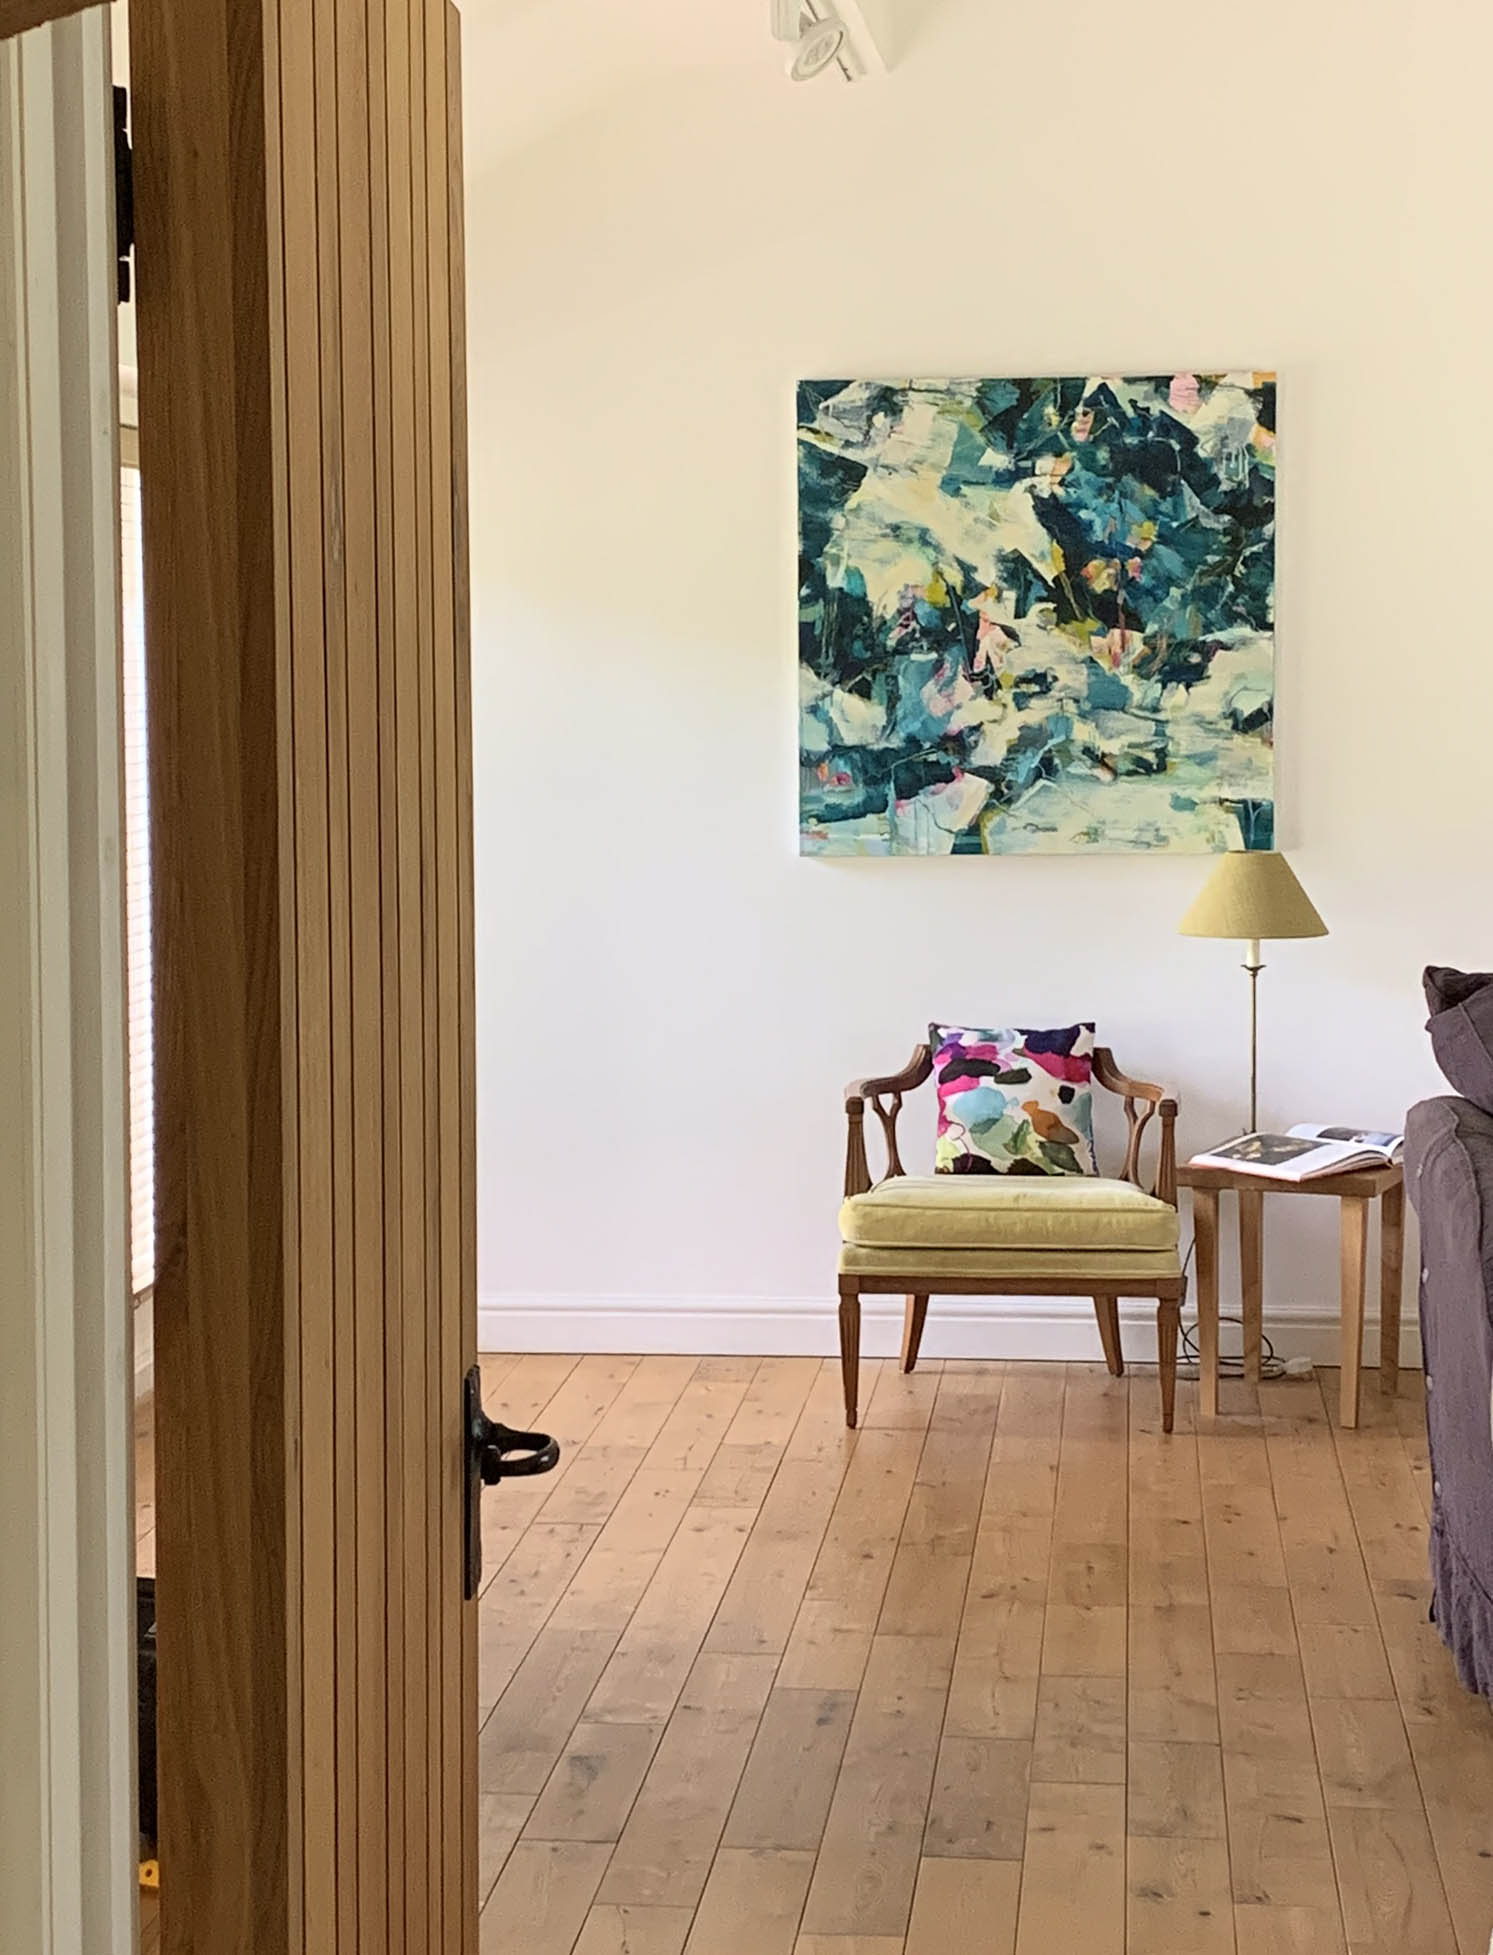 Commission paintings for your home